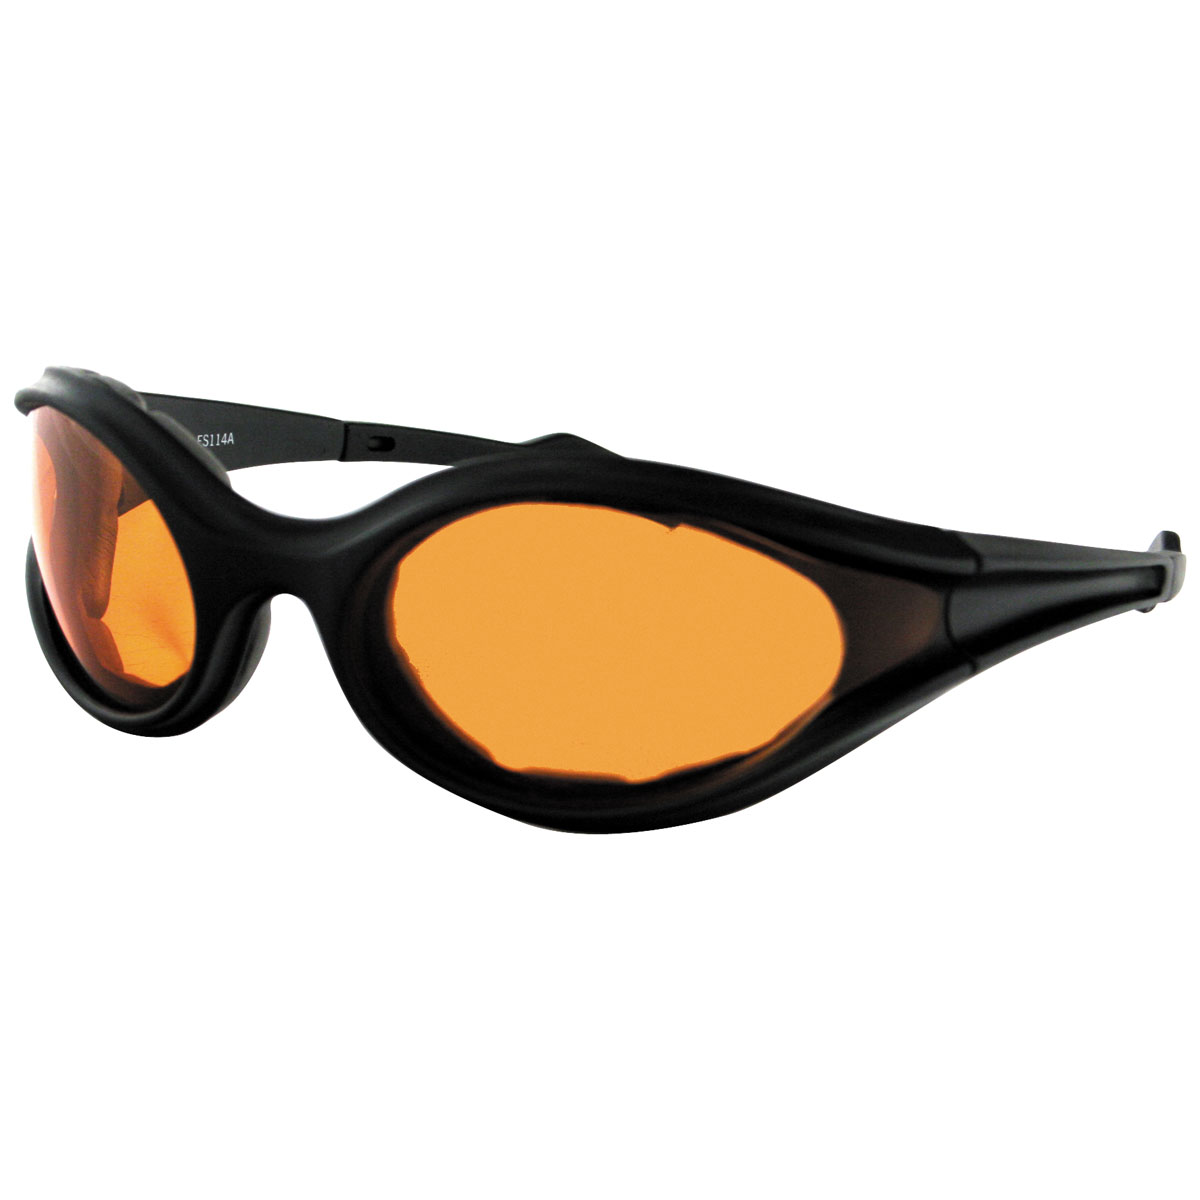 Bobster Foamerz Sunglasses with Amber Lens